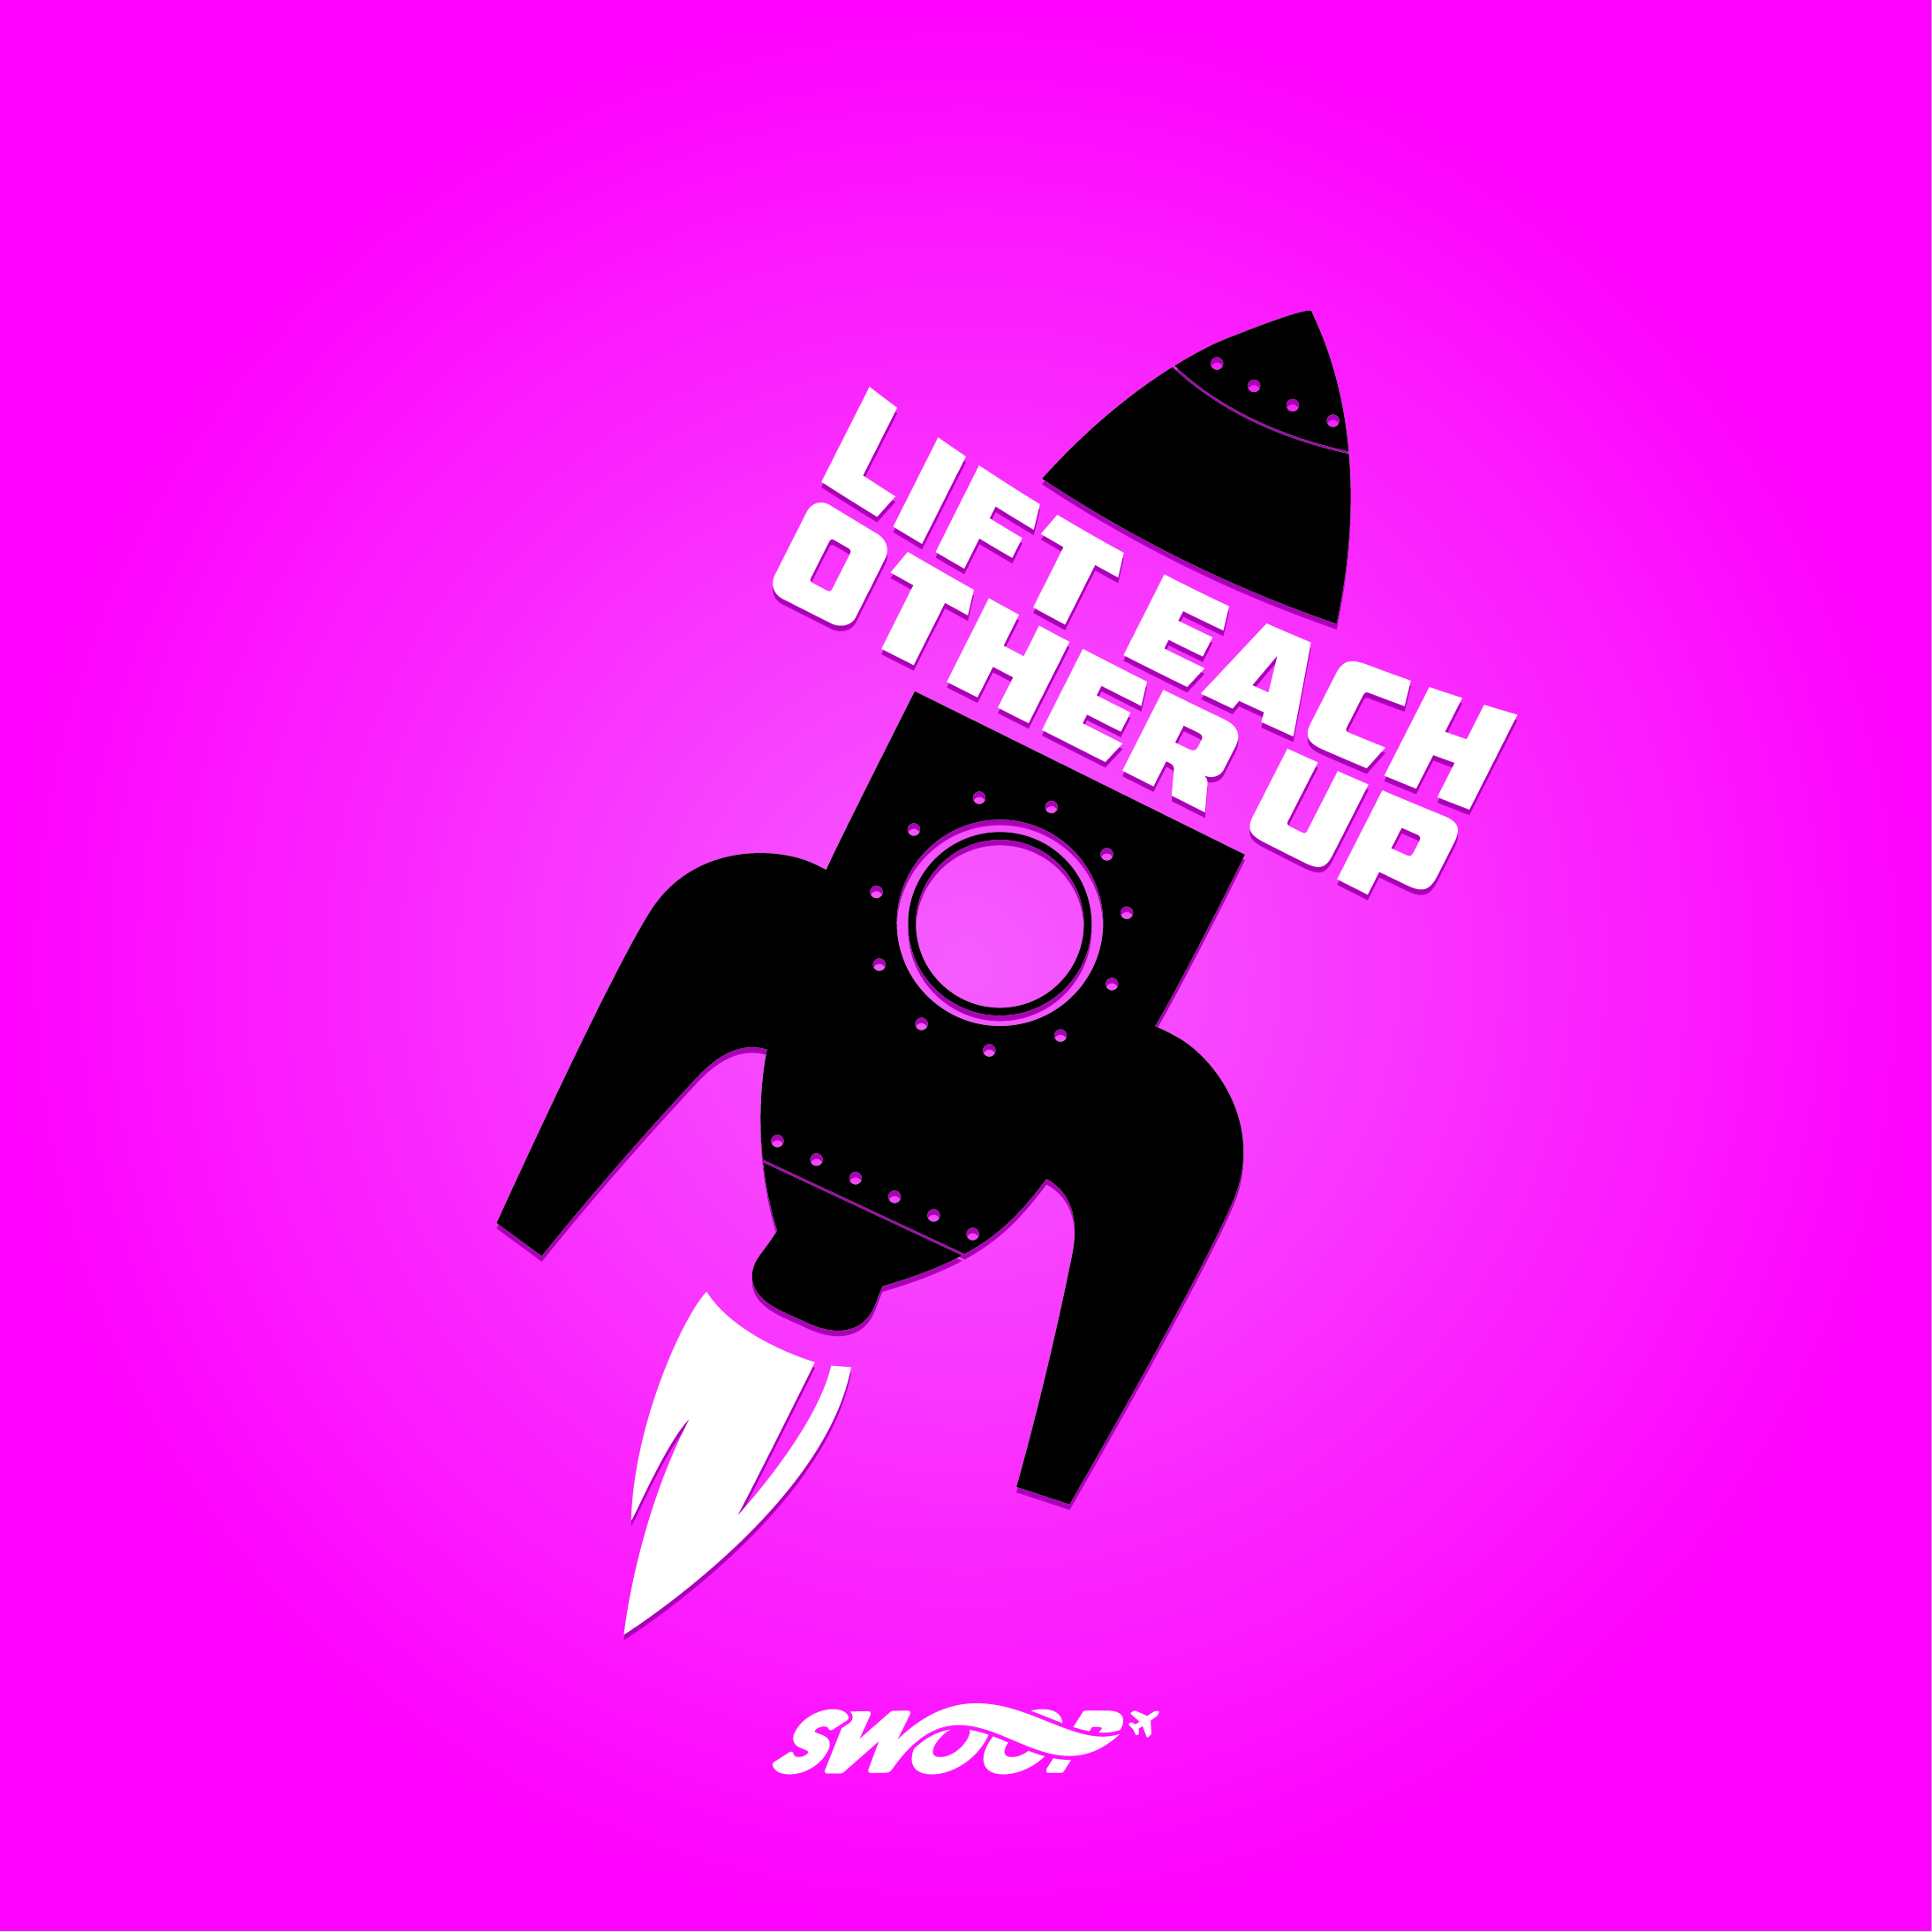 swoop | a graphic of a rocket with the text